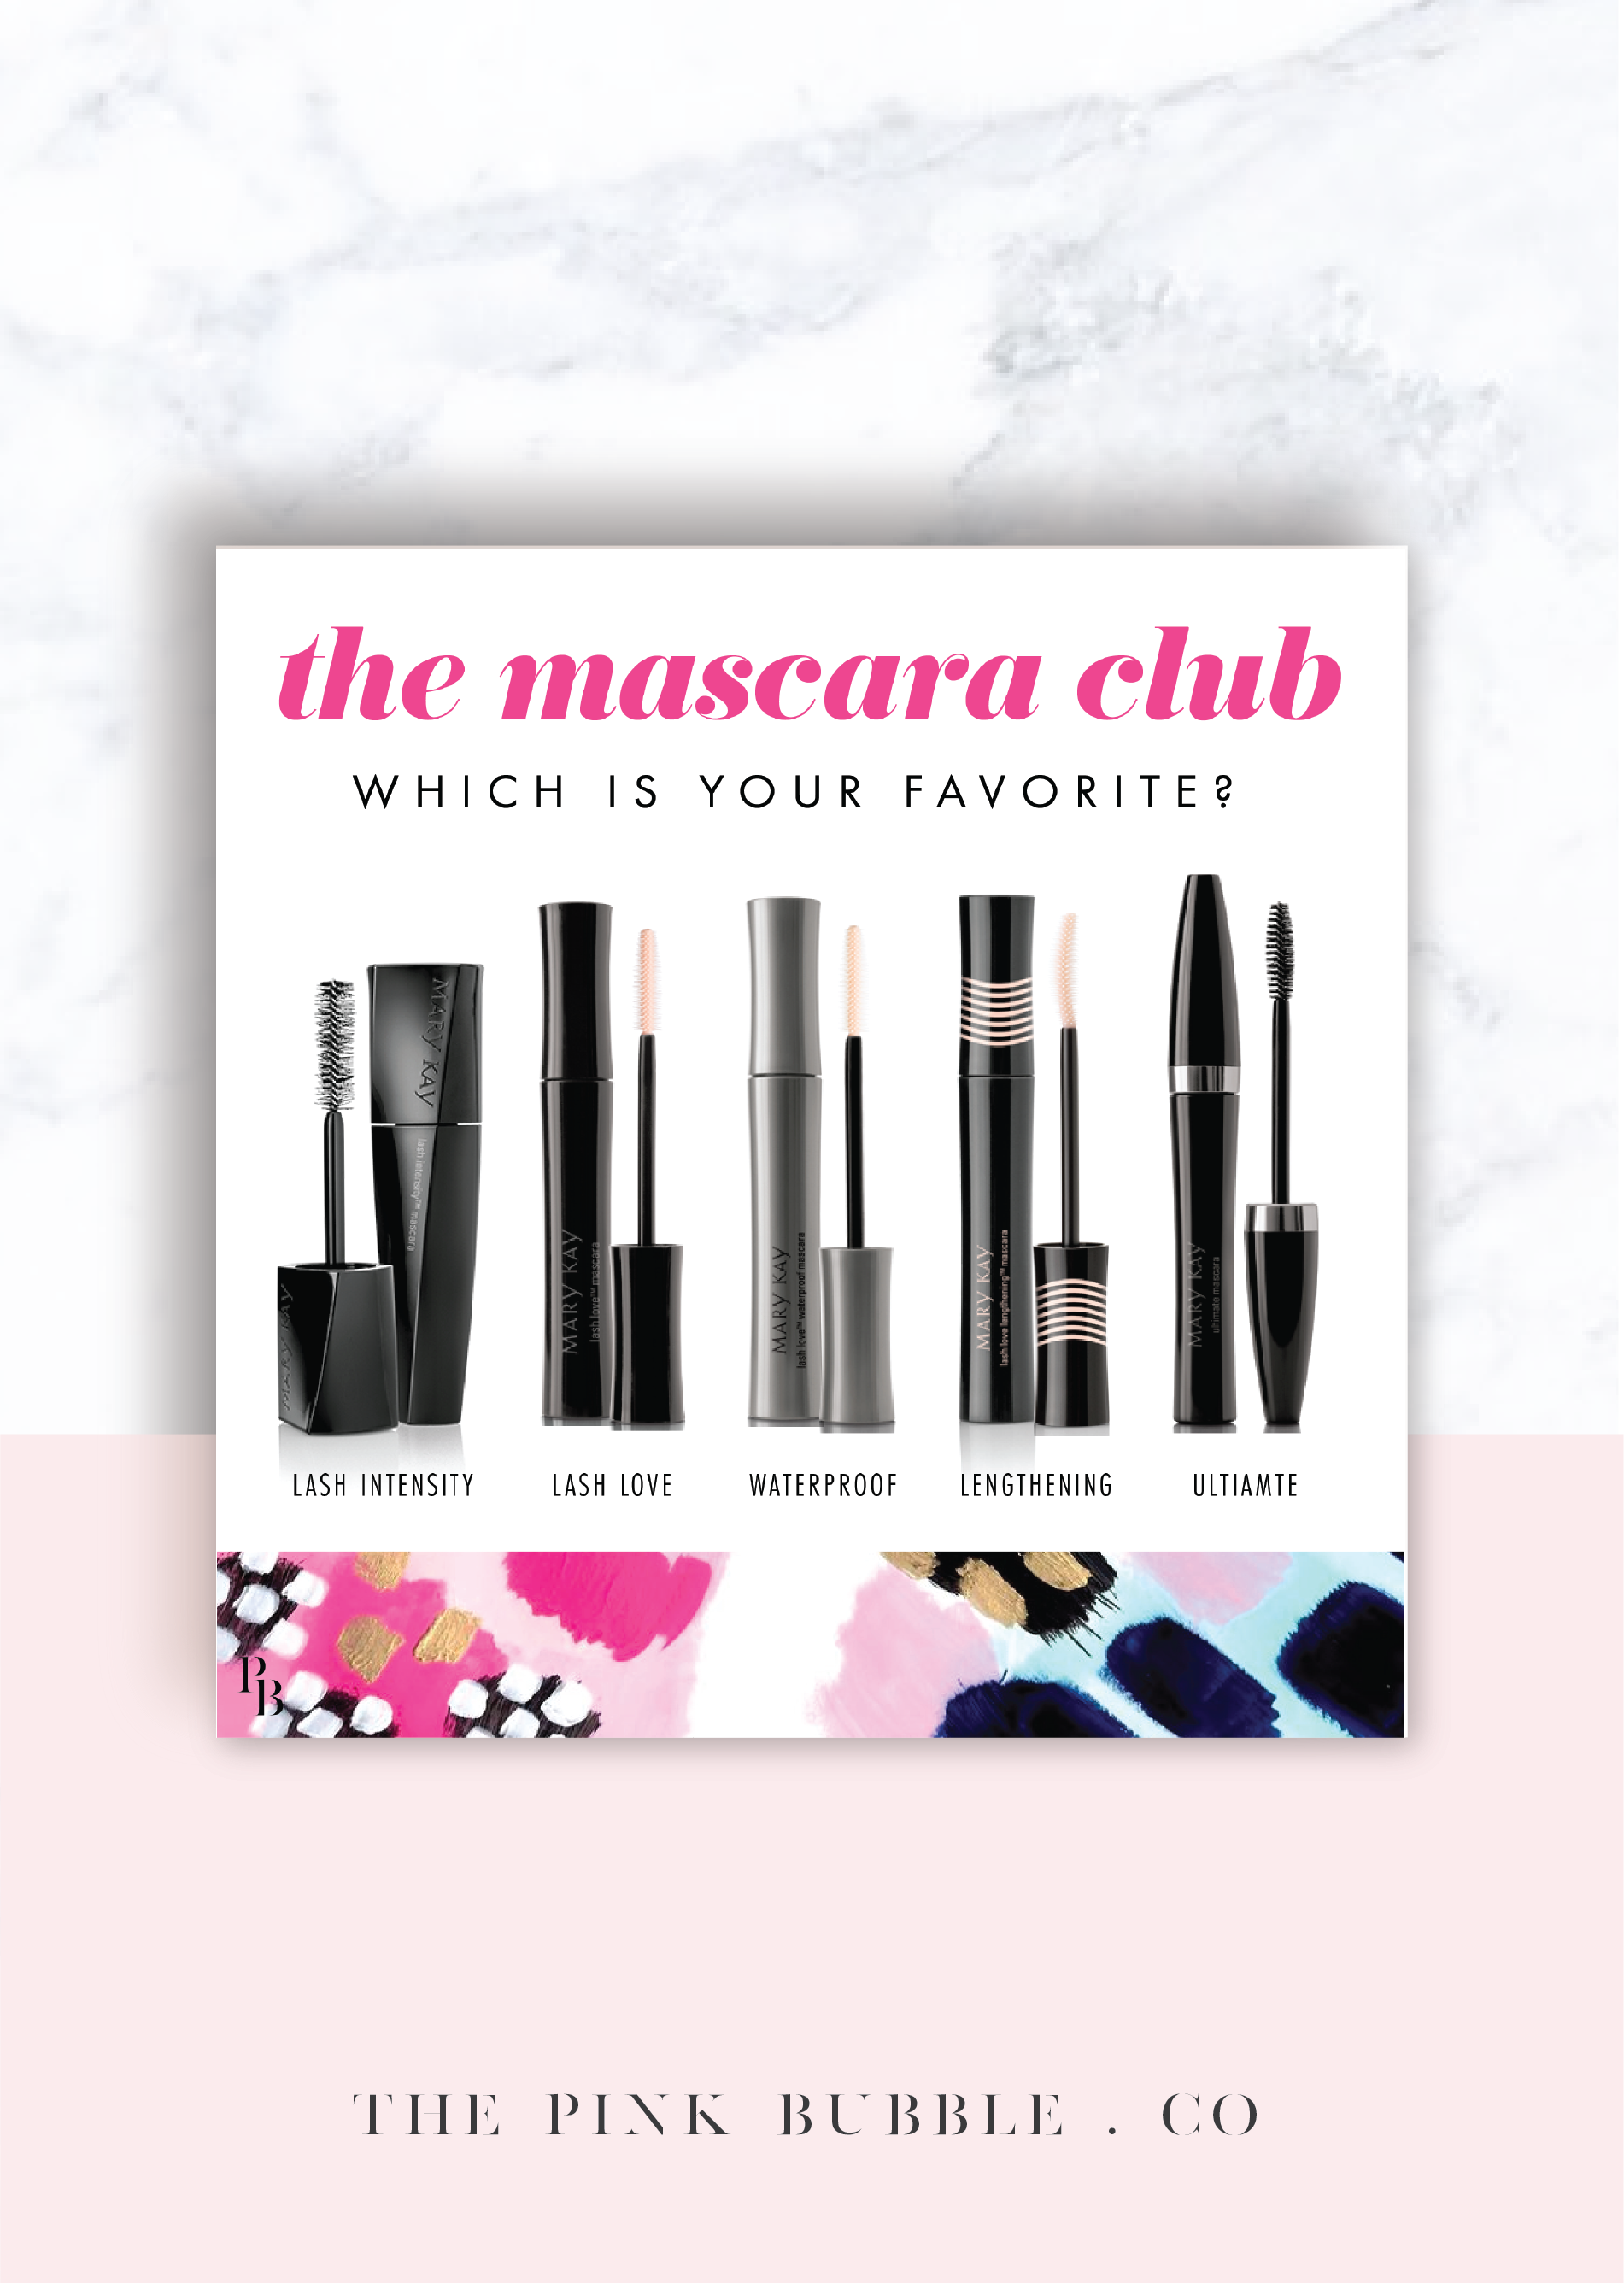 Mary Kay Sales Ideas For June 2019 Seminar Year End Mary Kay Mascara Club social media post! Find it only at